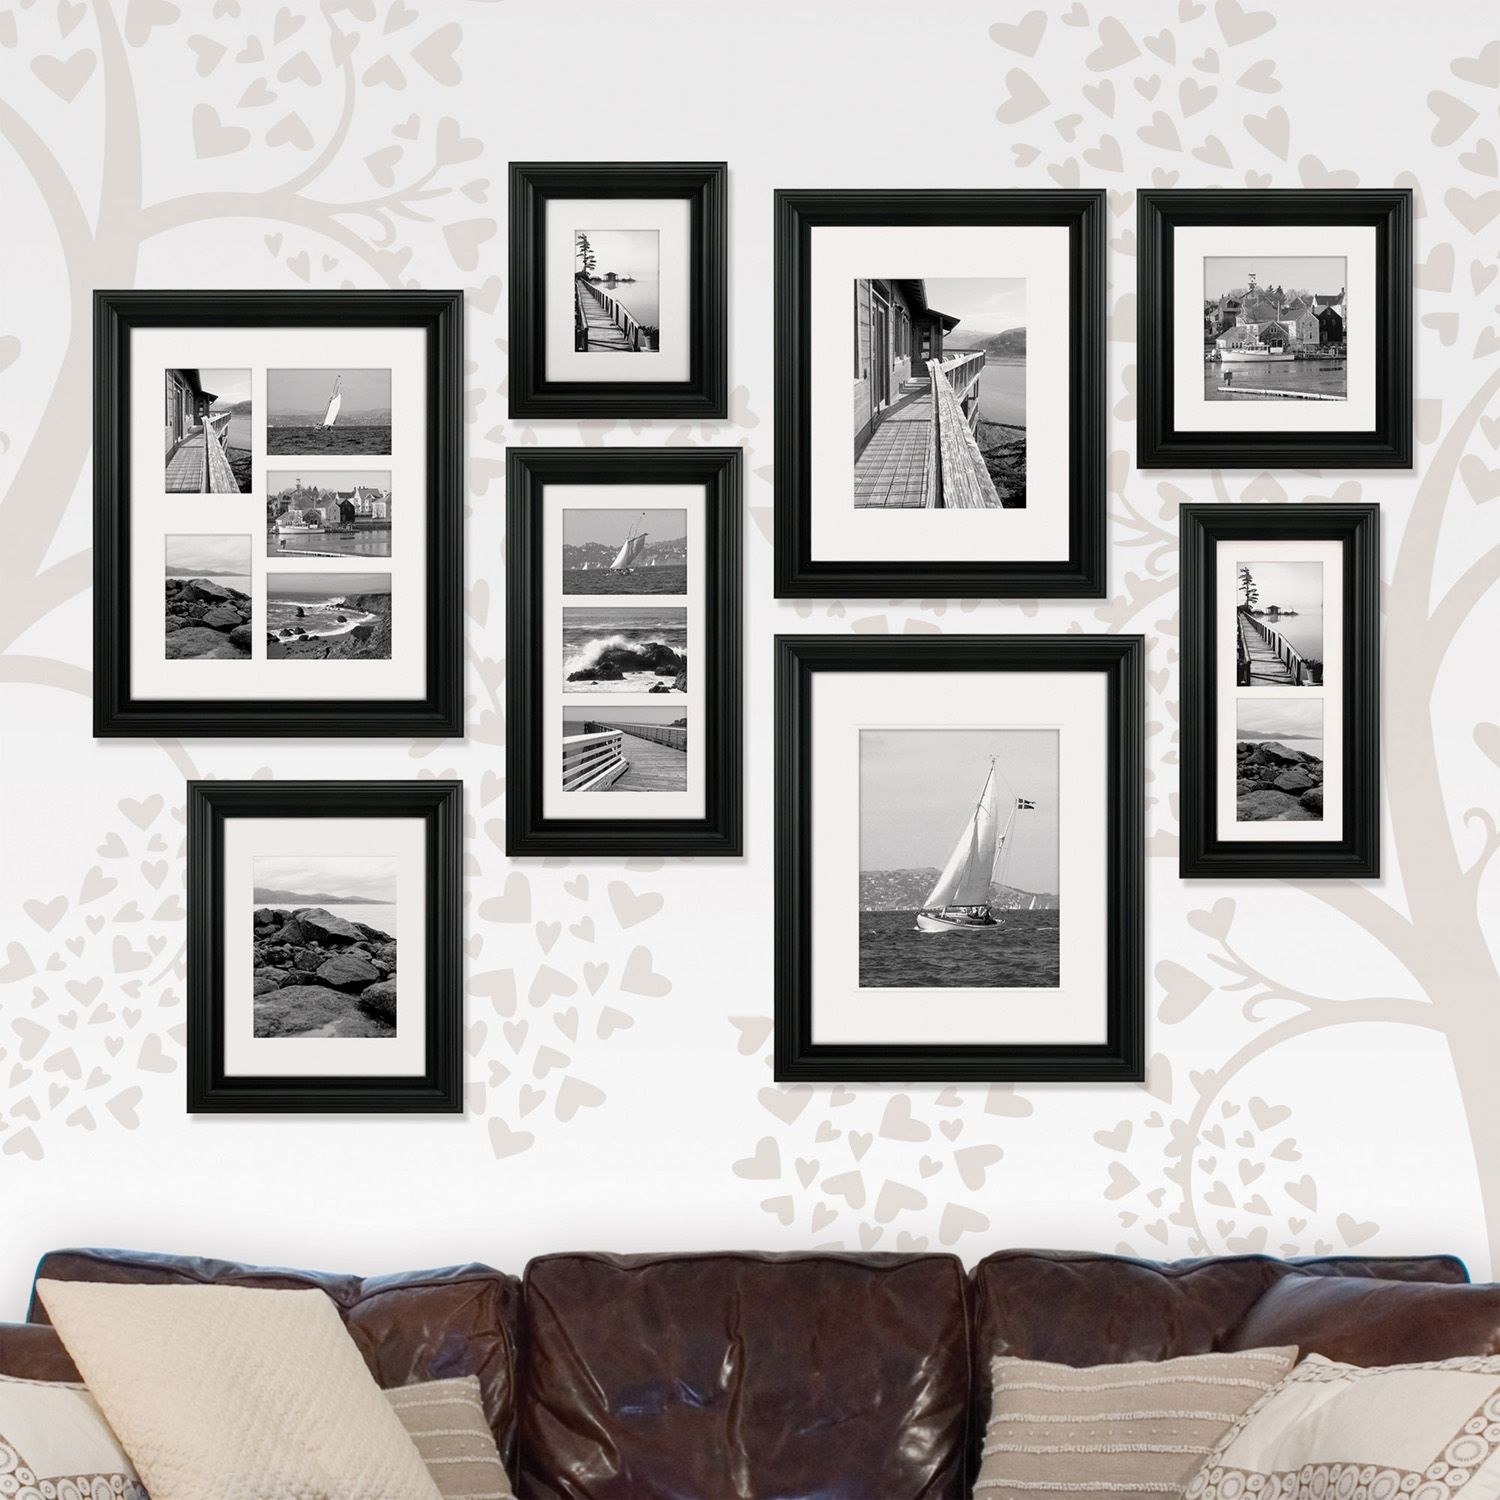 These Malden frame are a great way to show off your memories. The ...